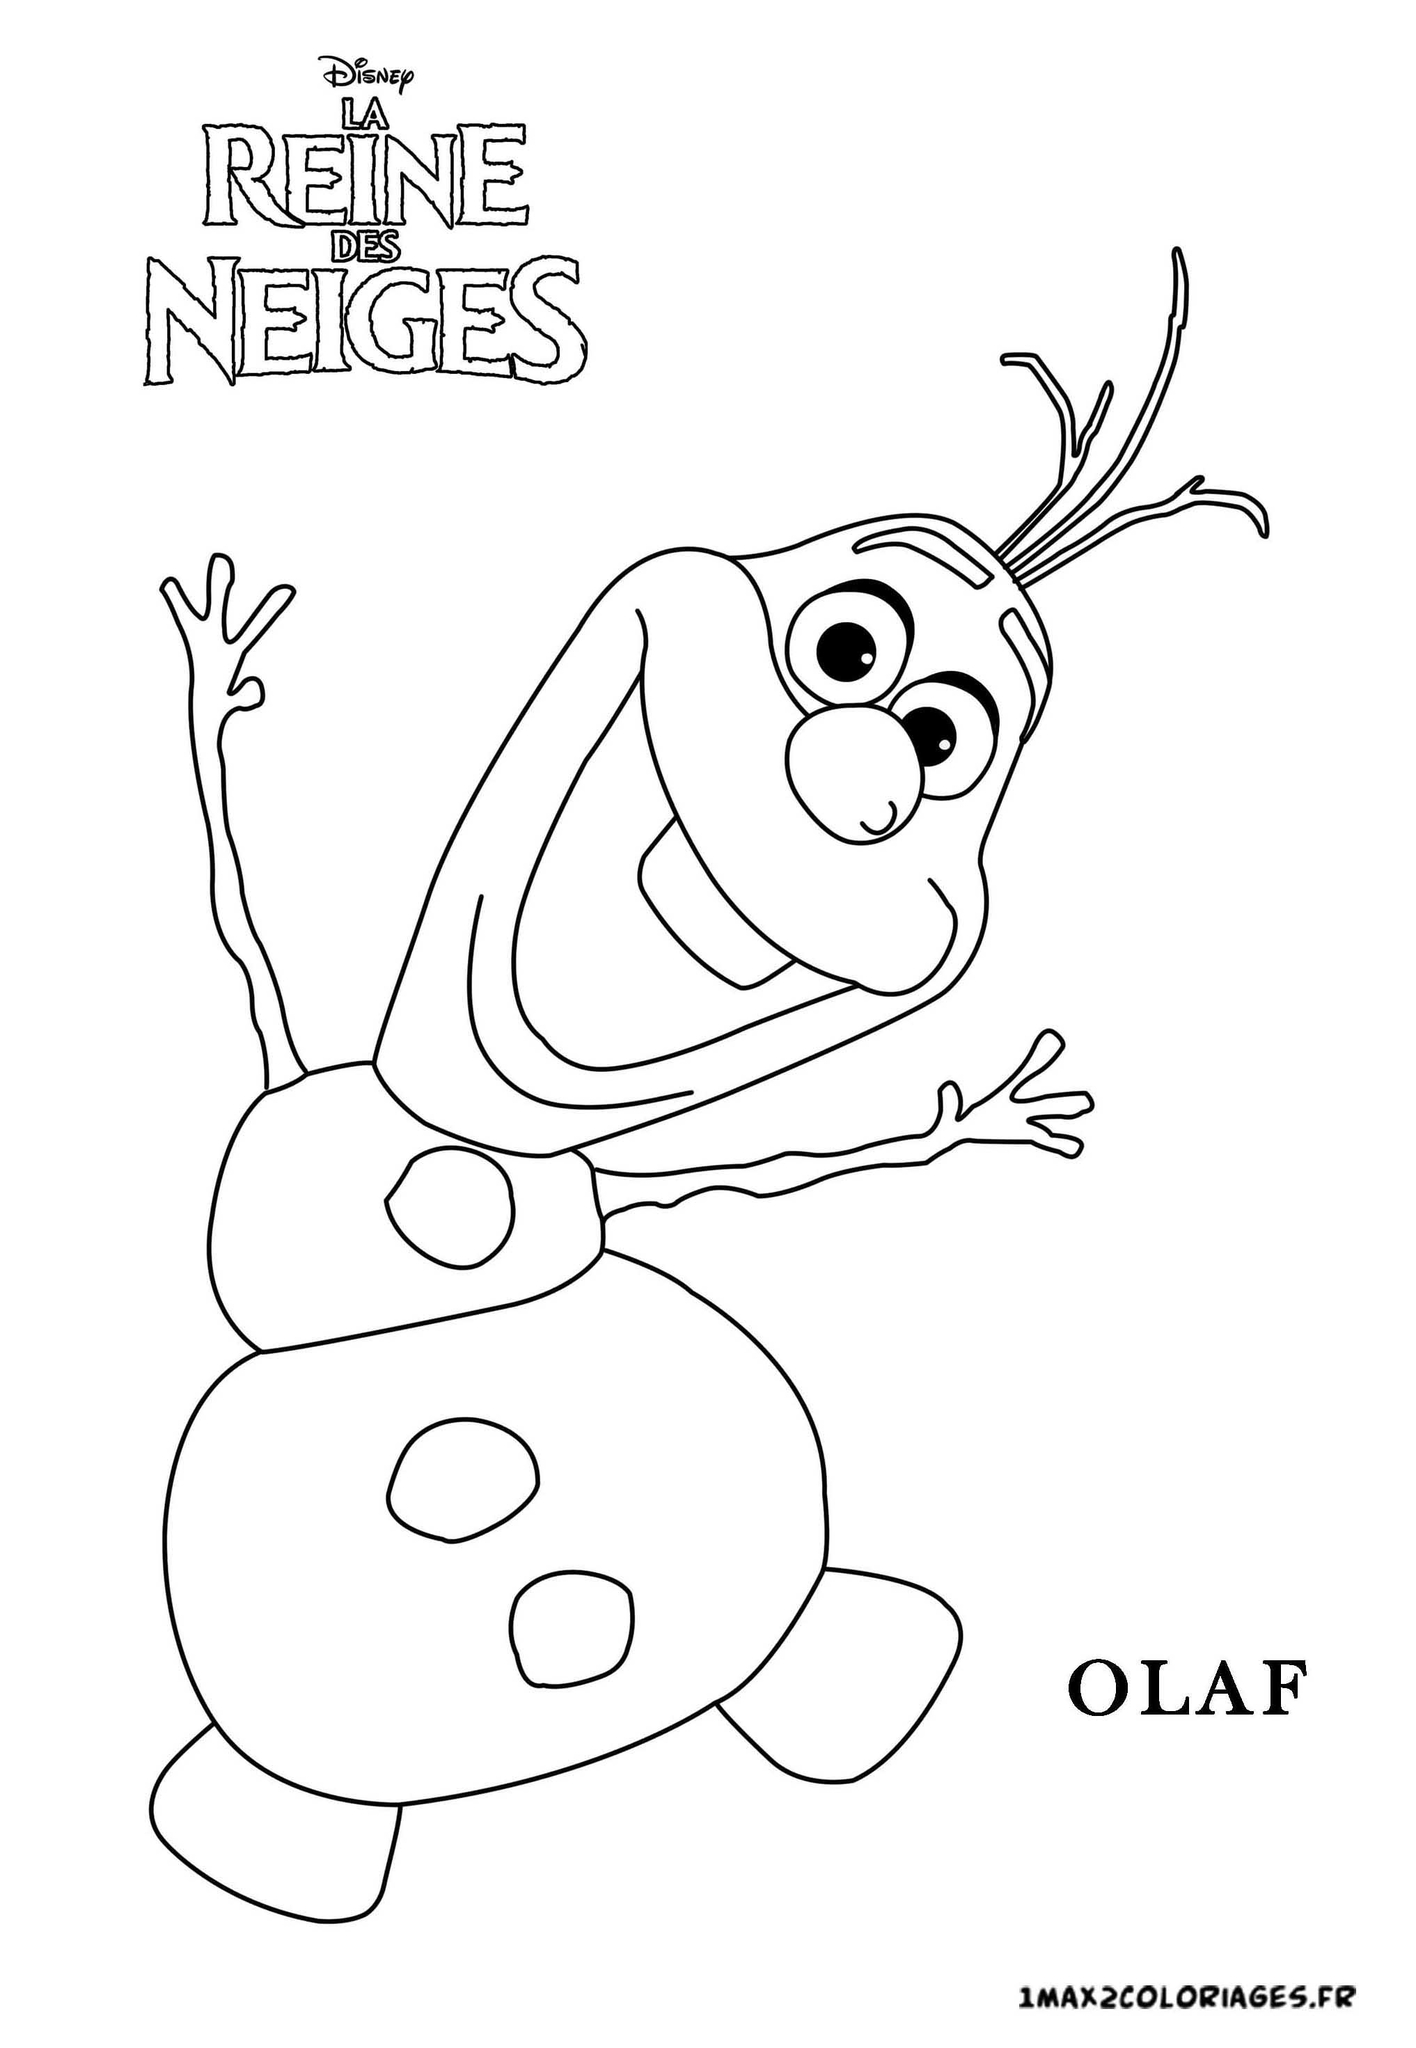 Olaf Coloring Pages Pdf : Dessins de coloriage reine des neiges olaf � imprimer